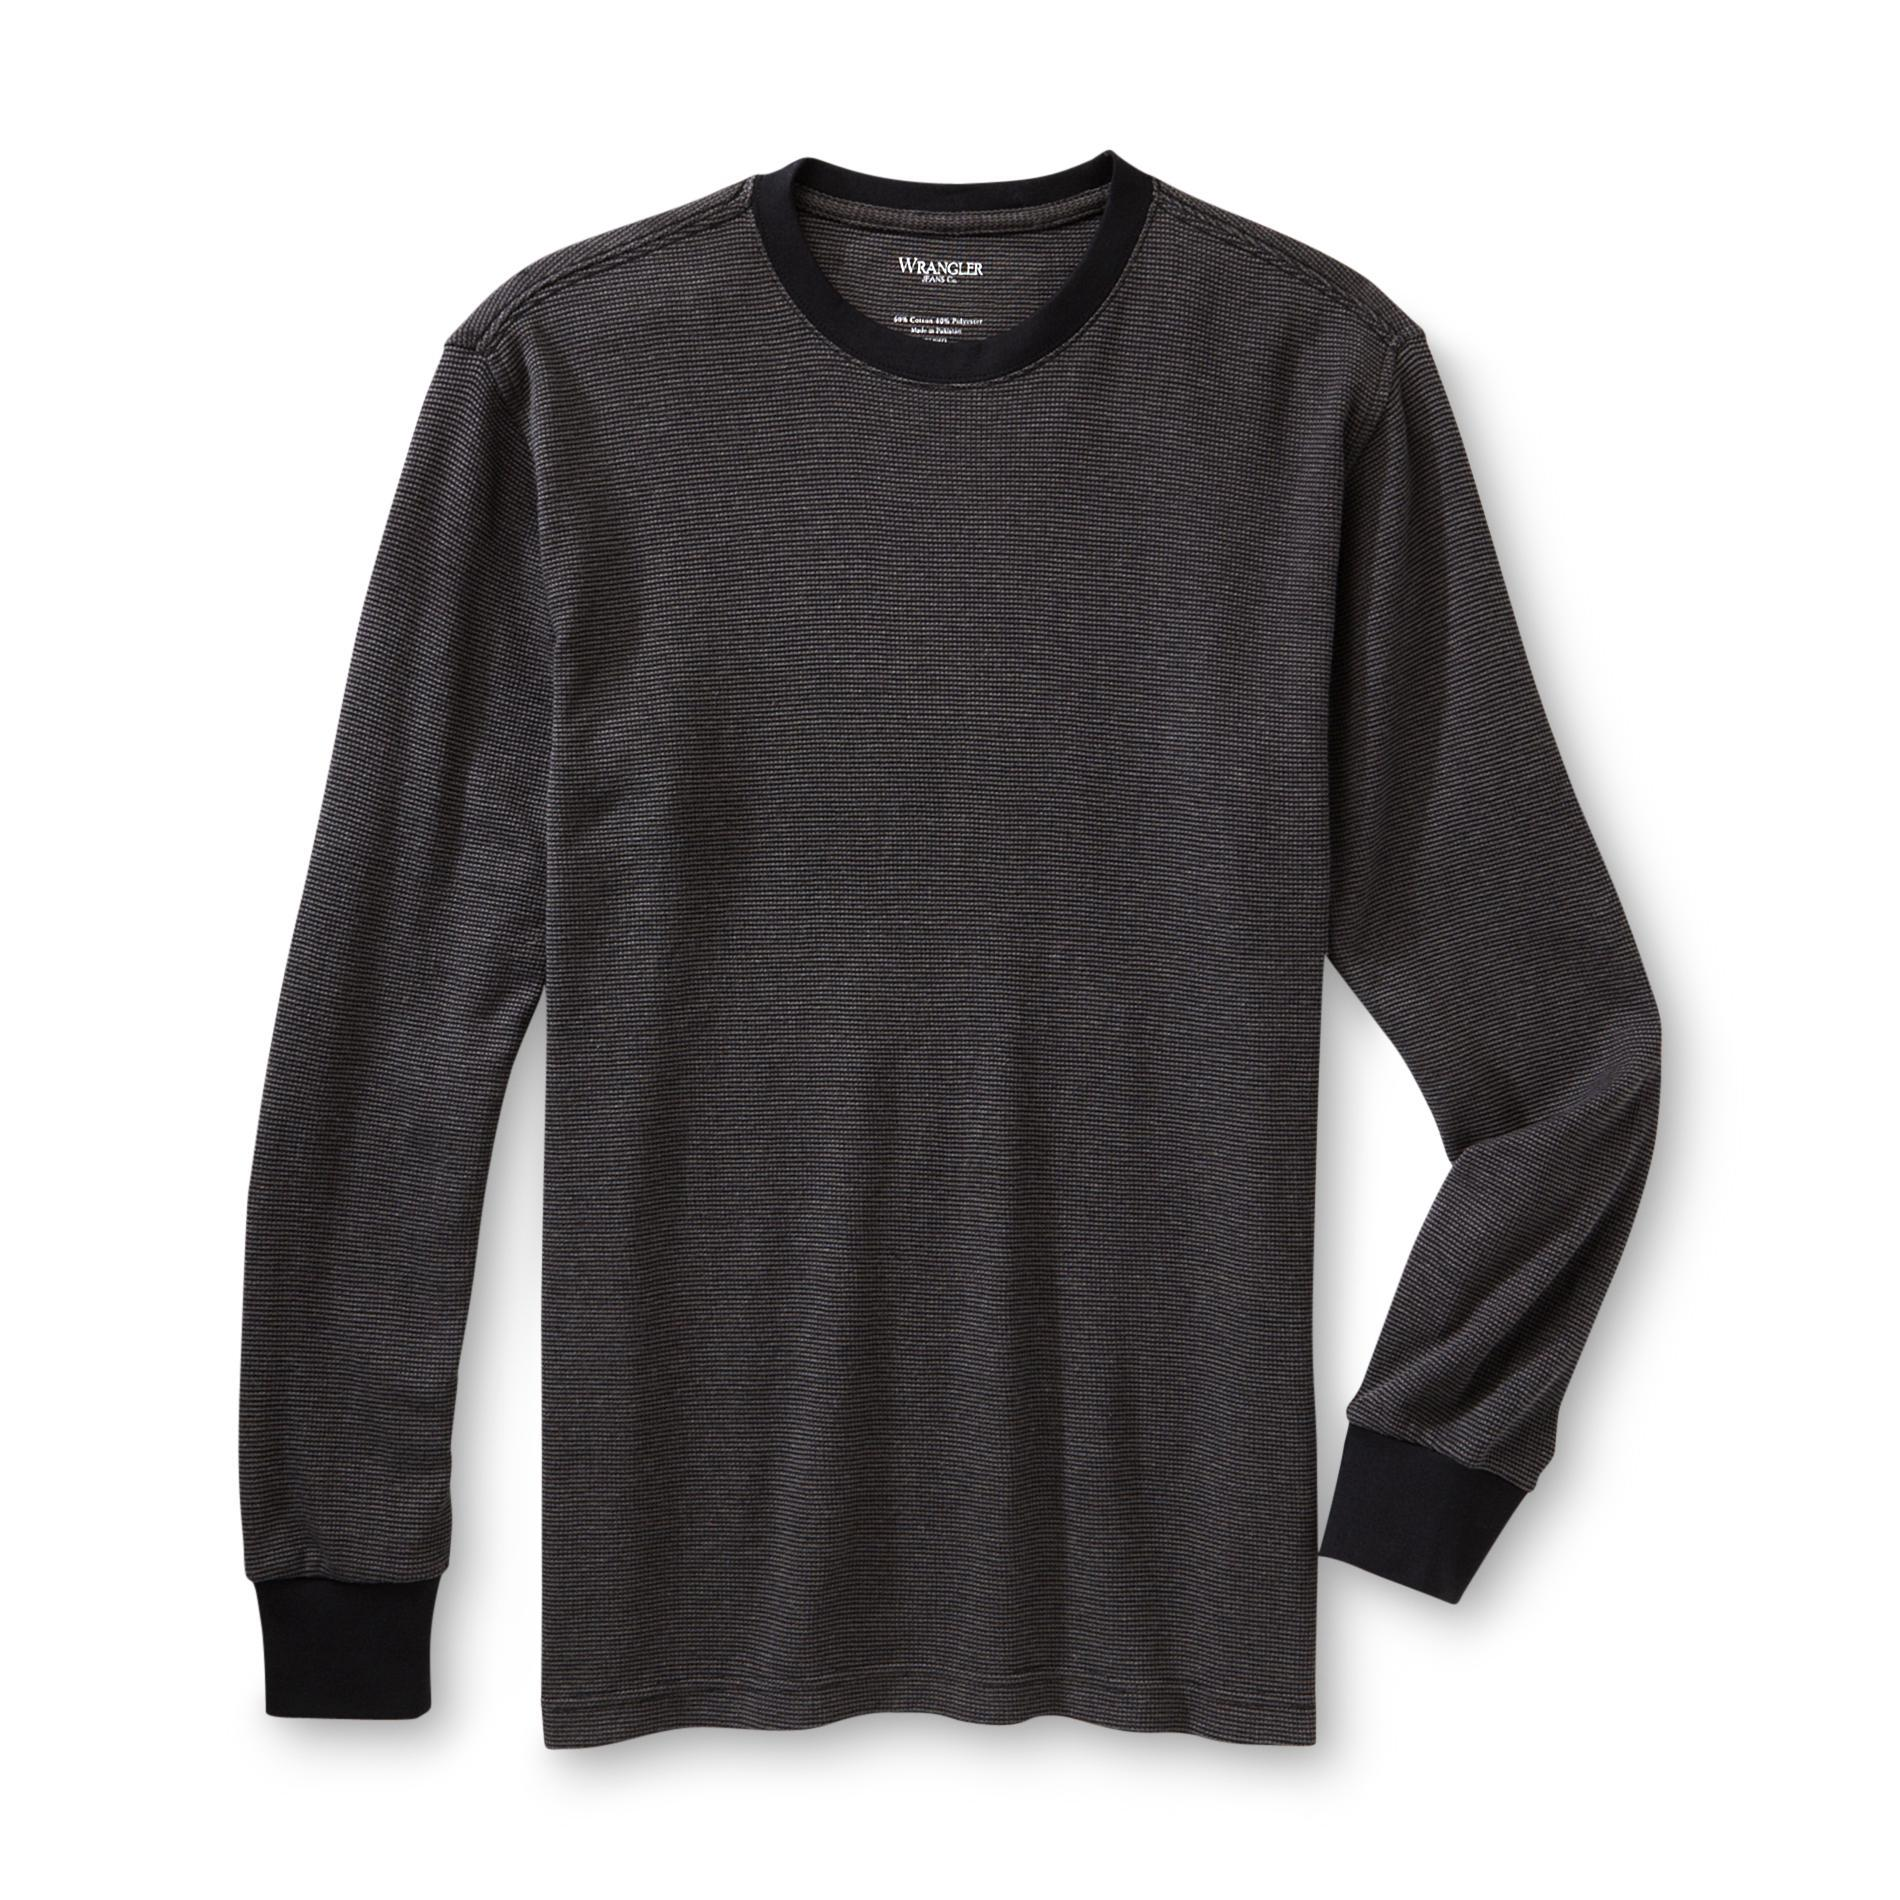 Men's Long-Sleeve Thermal Shirt